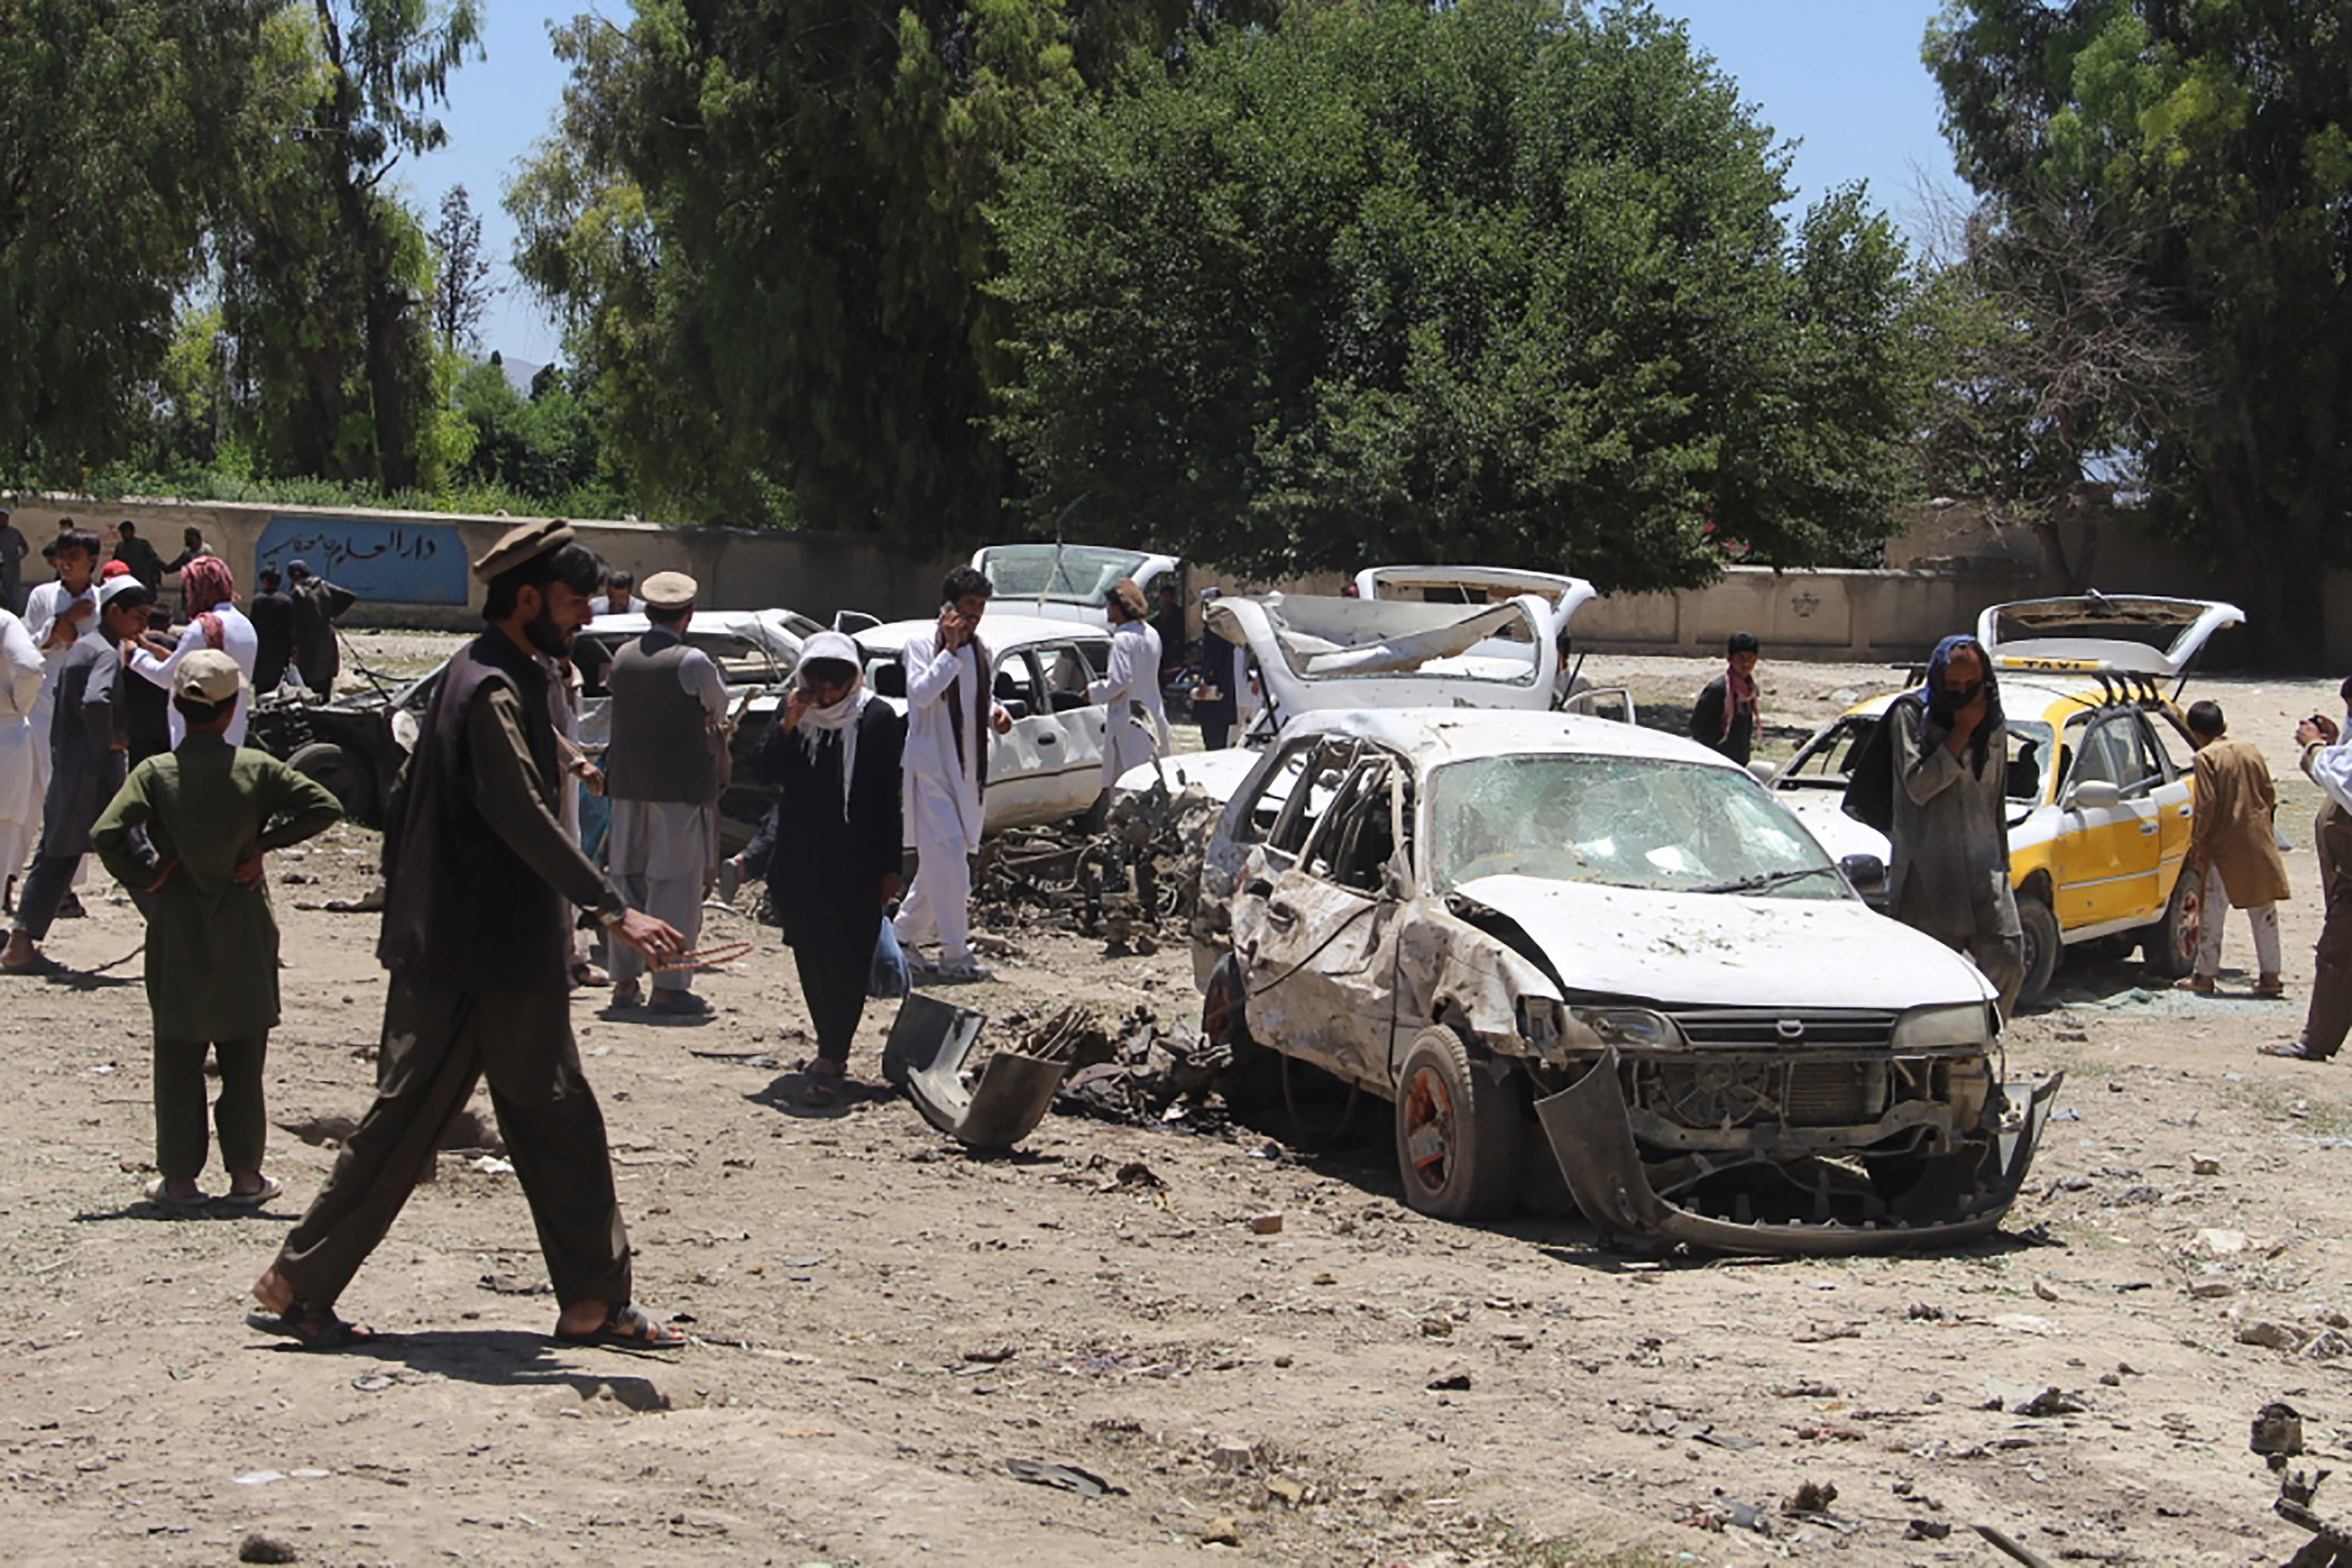 Taliban marks start of Ramadan with suicide car bombing in Khost